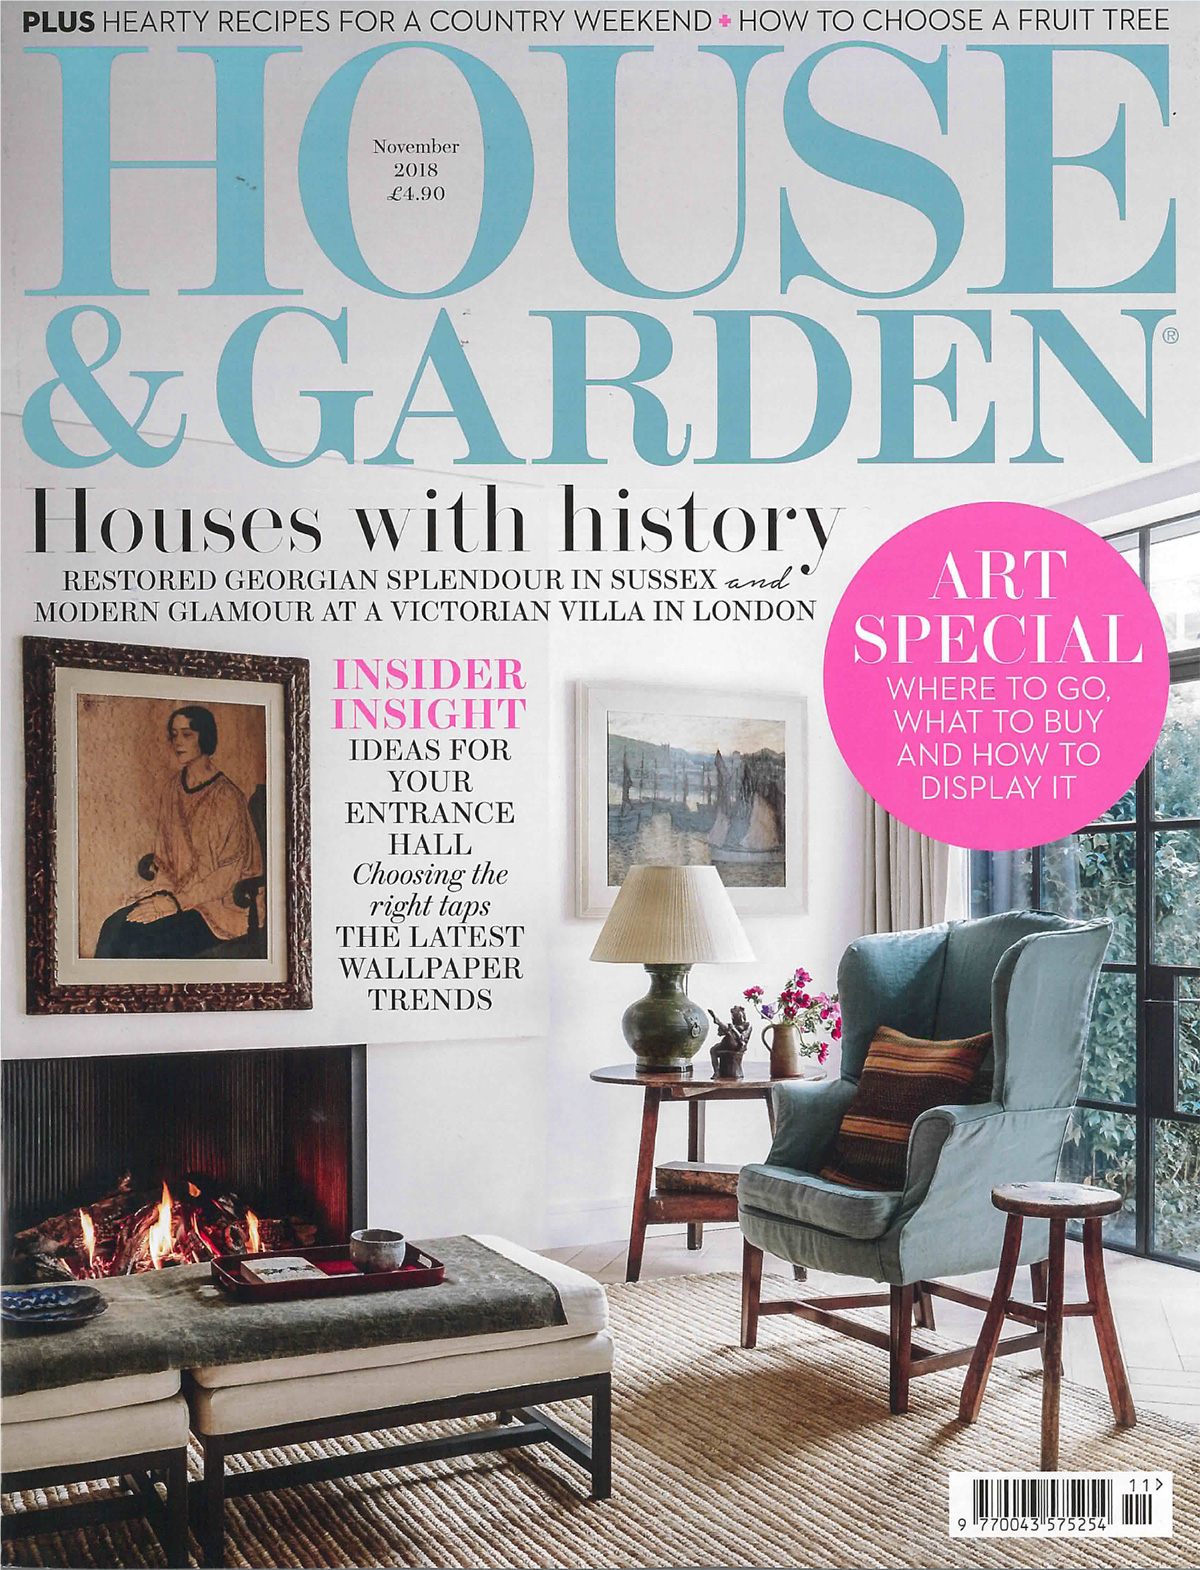 House and Garden – November Edition